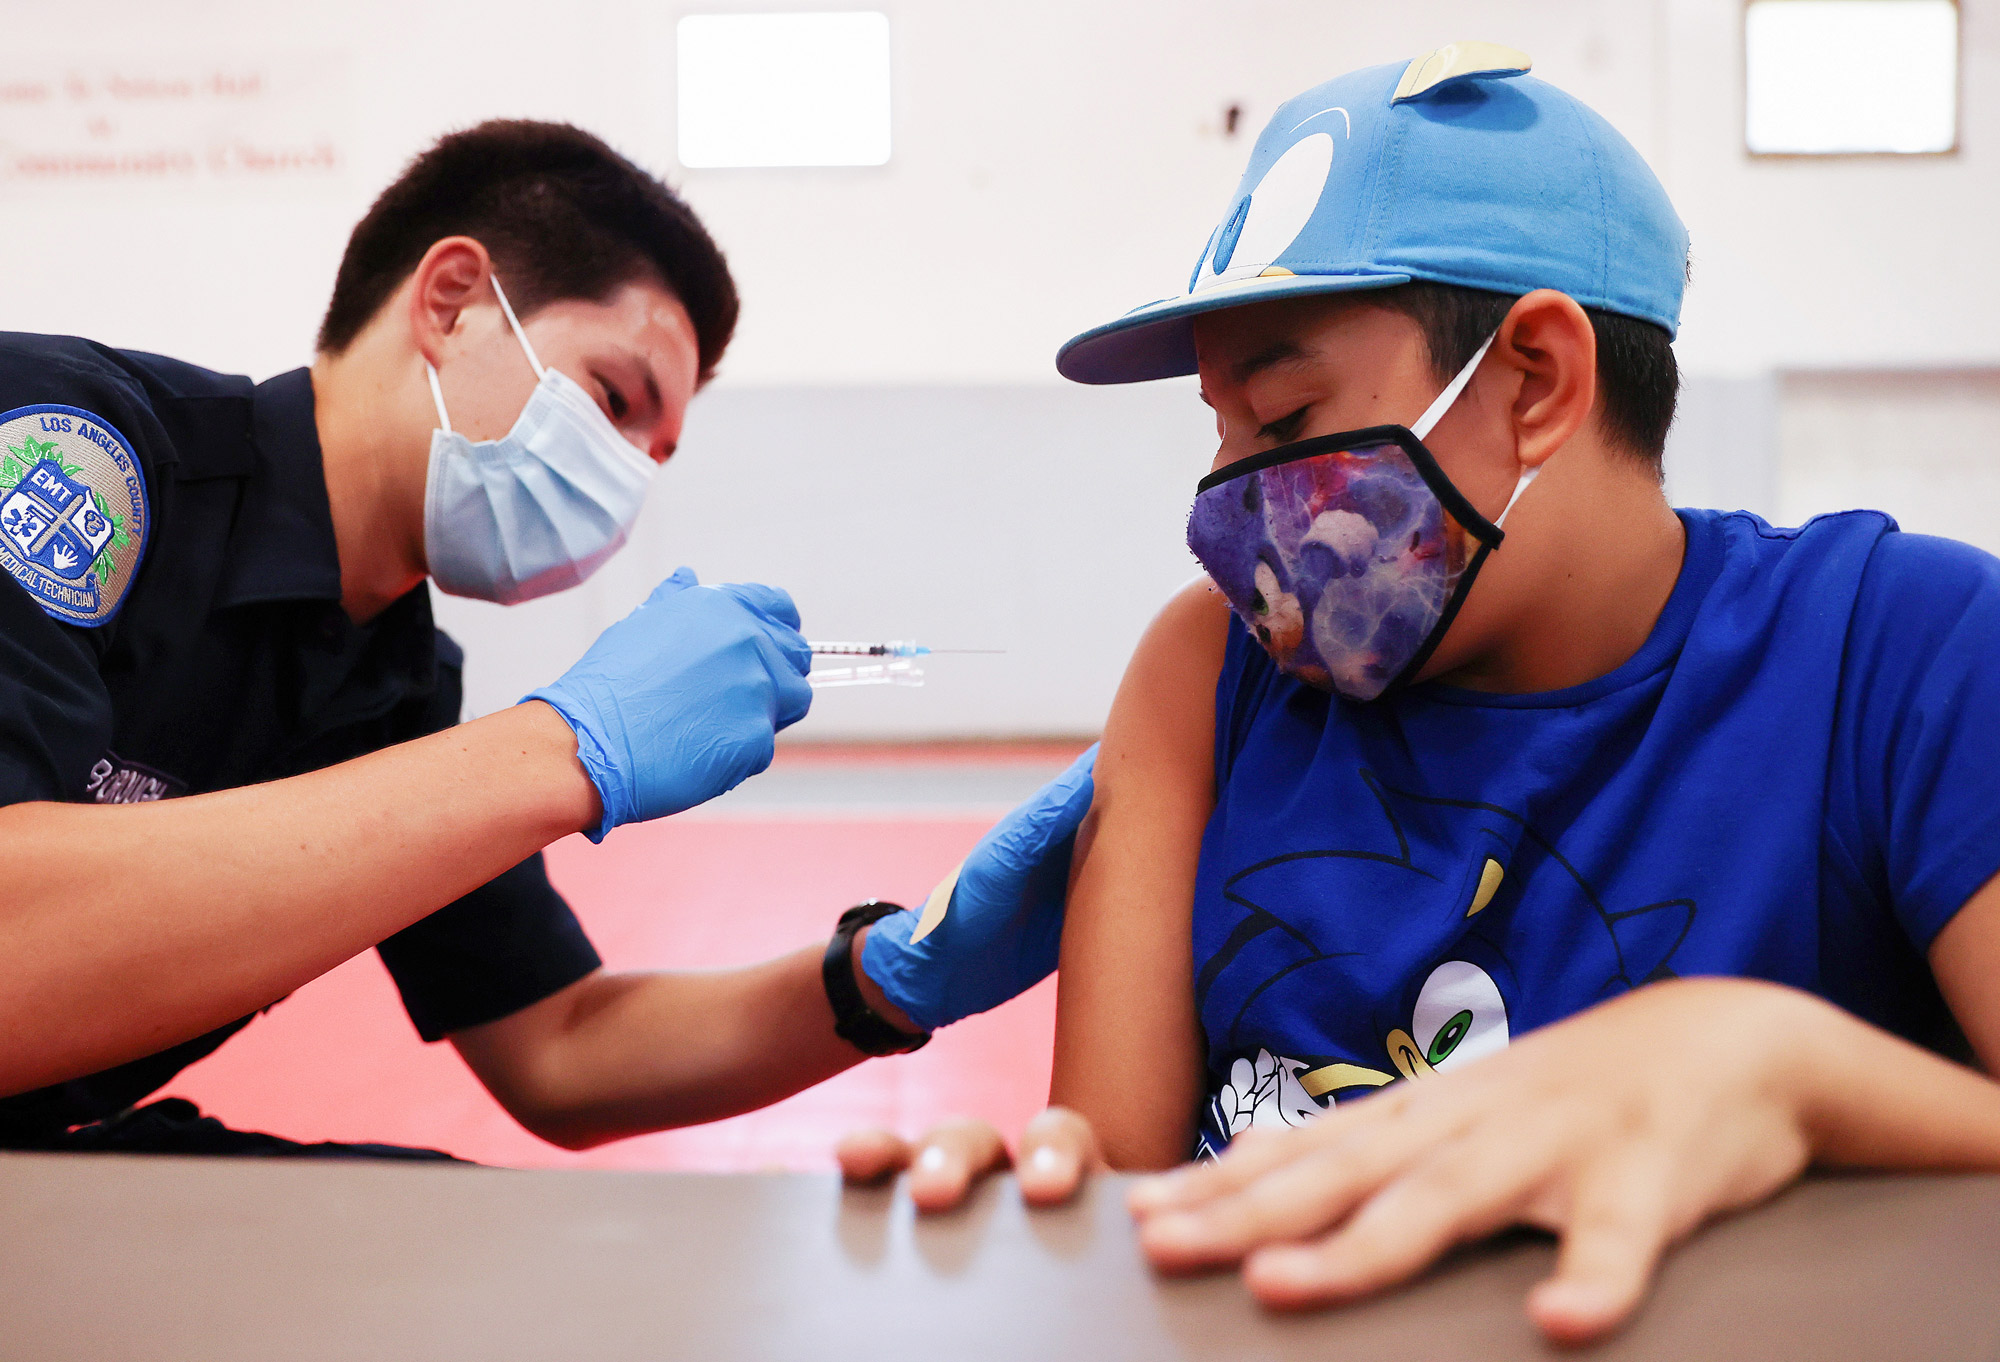 EMT Quentin Scarborough administers a vaccine dose to Nathan Alex Perez during a pop-up COVID-19 vaccination clinic at James Jordan Middle School on July 6 in Winnetka, California.